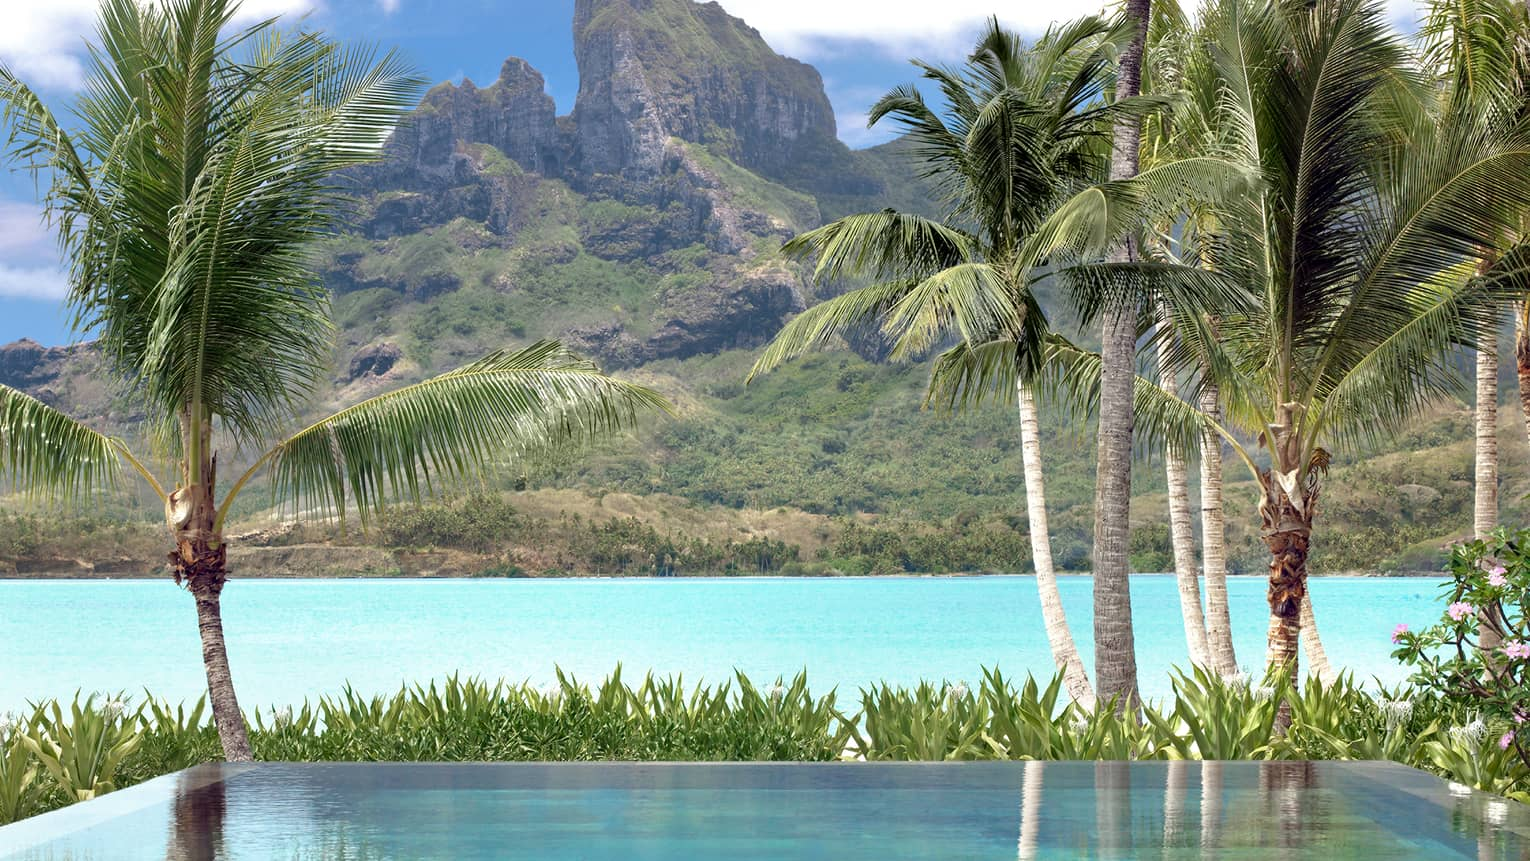 Otemanu beach plunge pool and palm trees overlooking lagoons, mountains